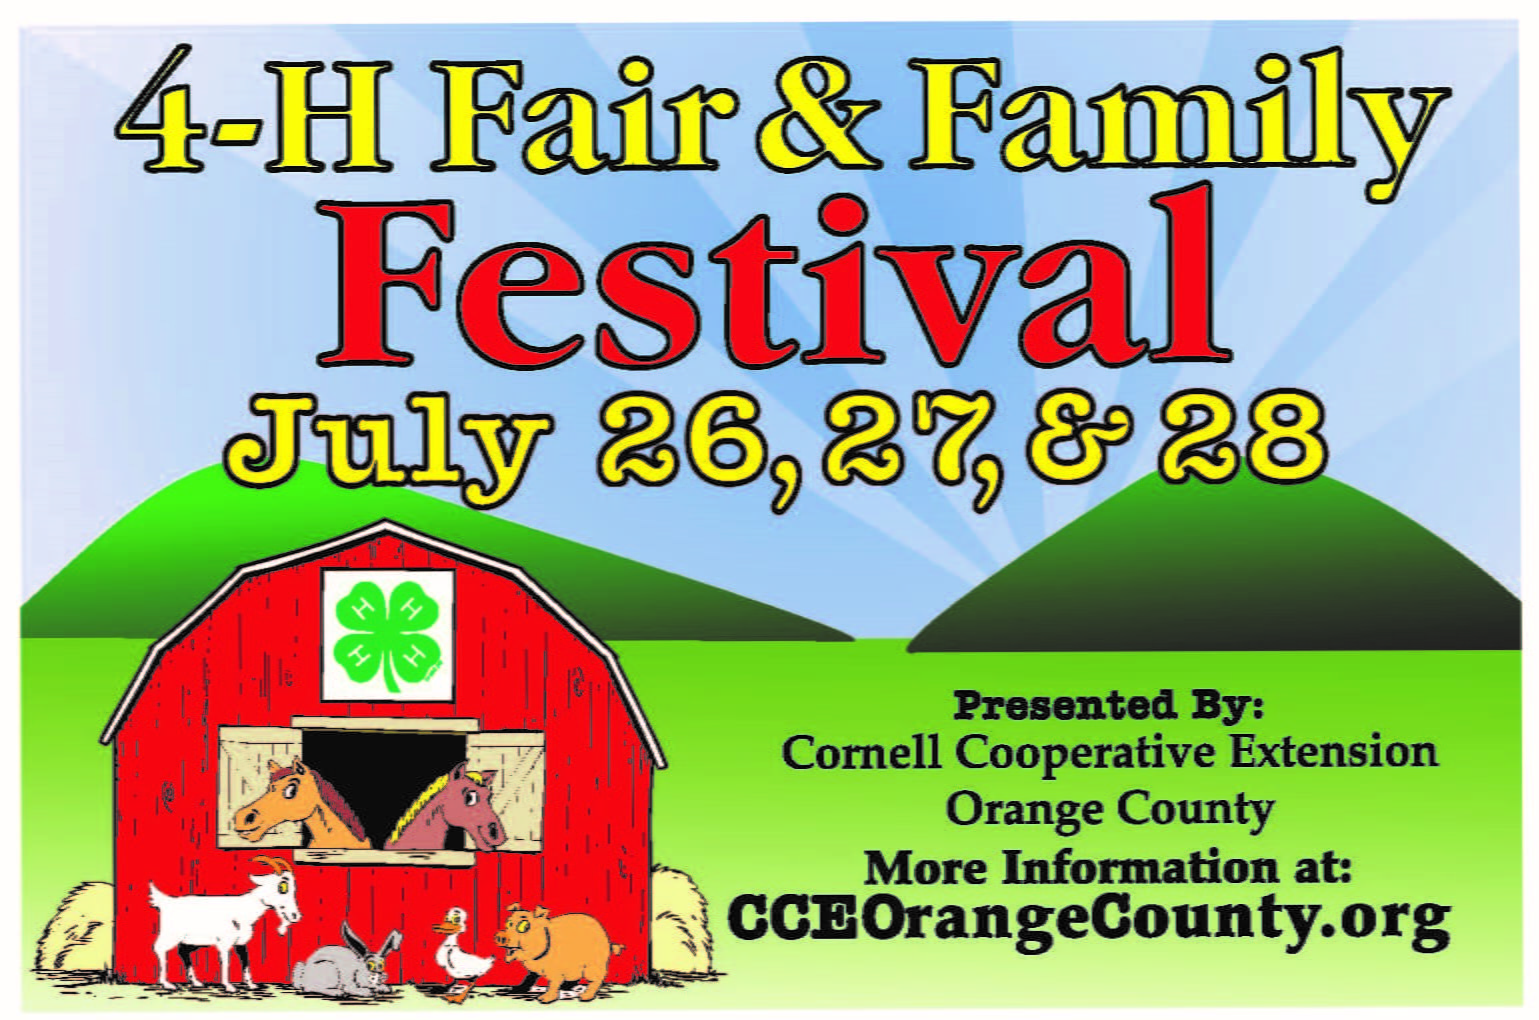 4-H Fair & Family Festival, July 26, 27, & 28, Presented by: Cornell Cooperative Extension Orange County, More information at cceorangecounty.org